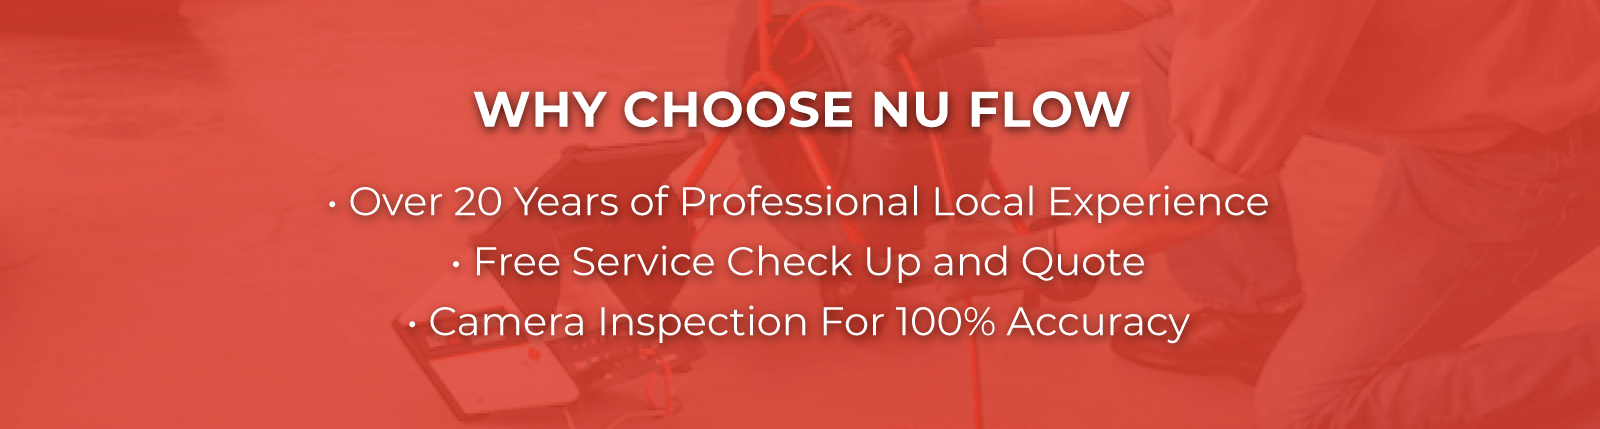 nu flow oklahoma sewer repair 1 Trenchless Sewer Repair